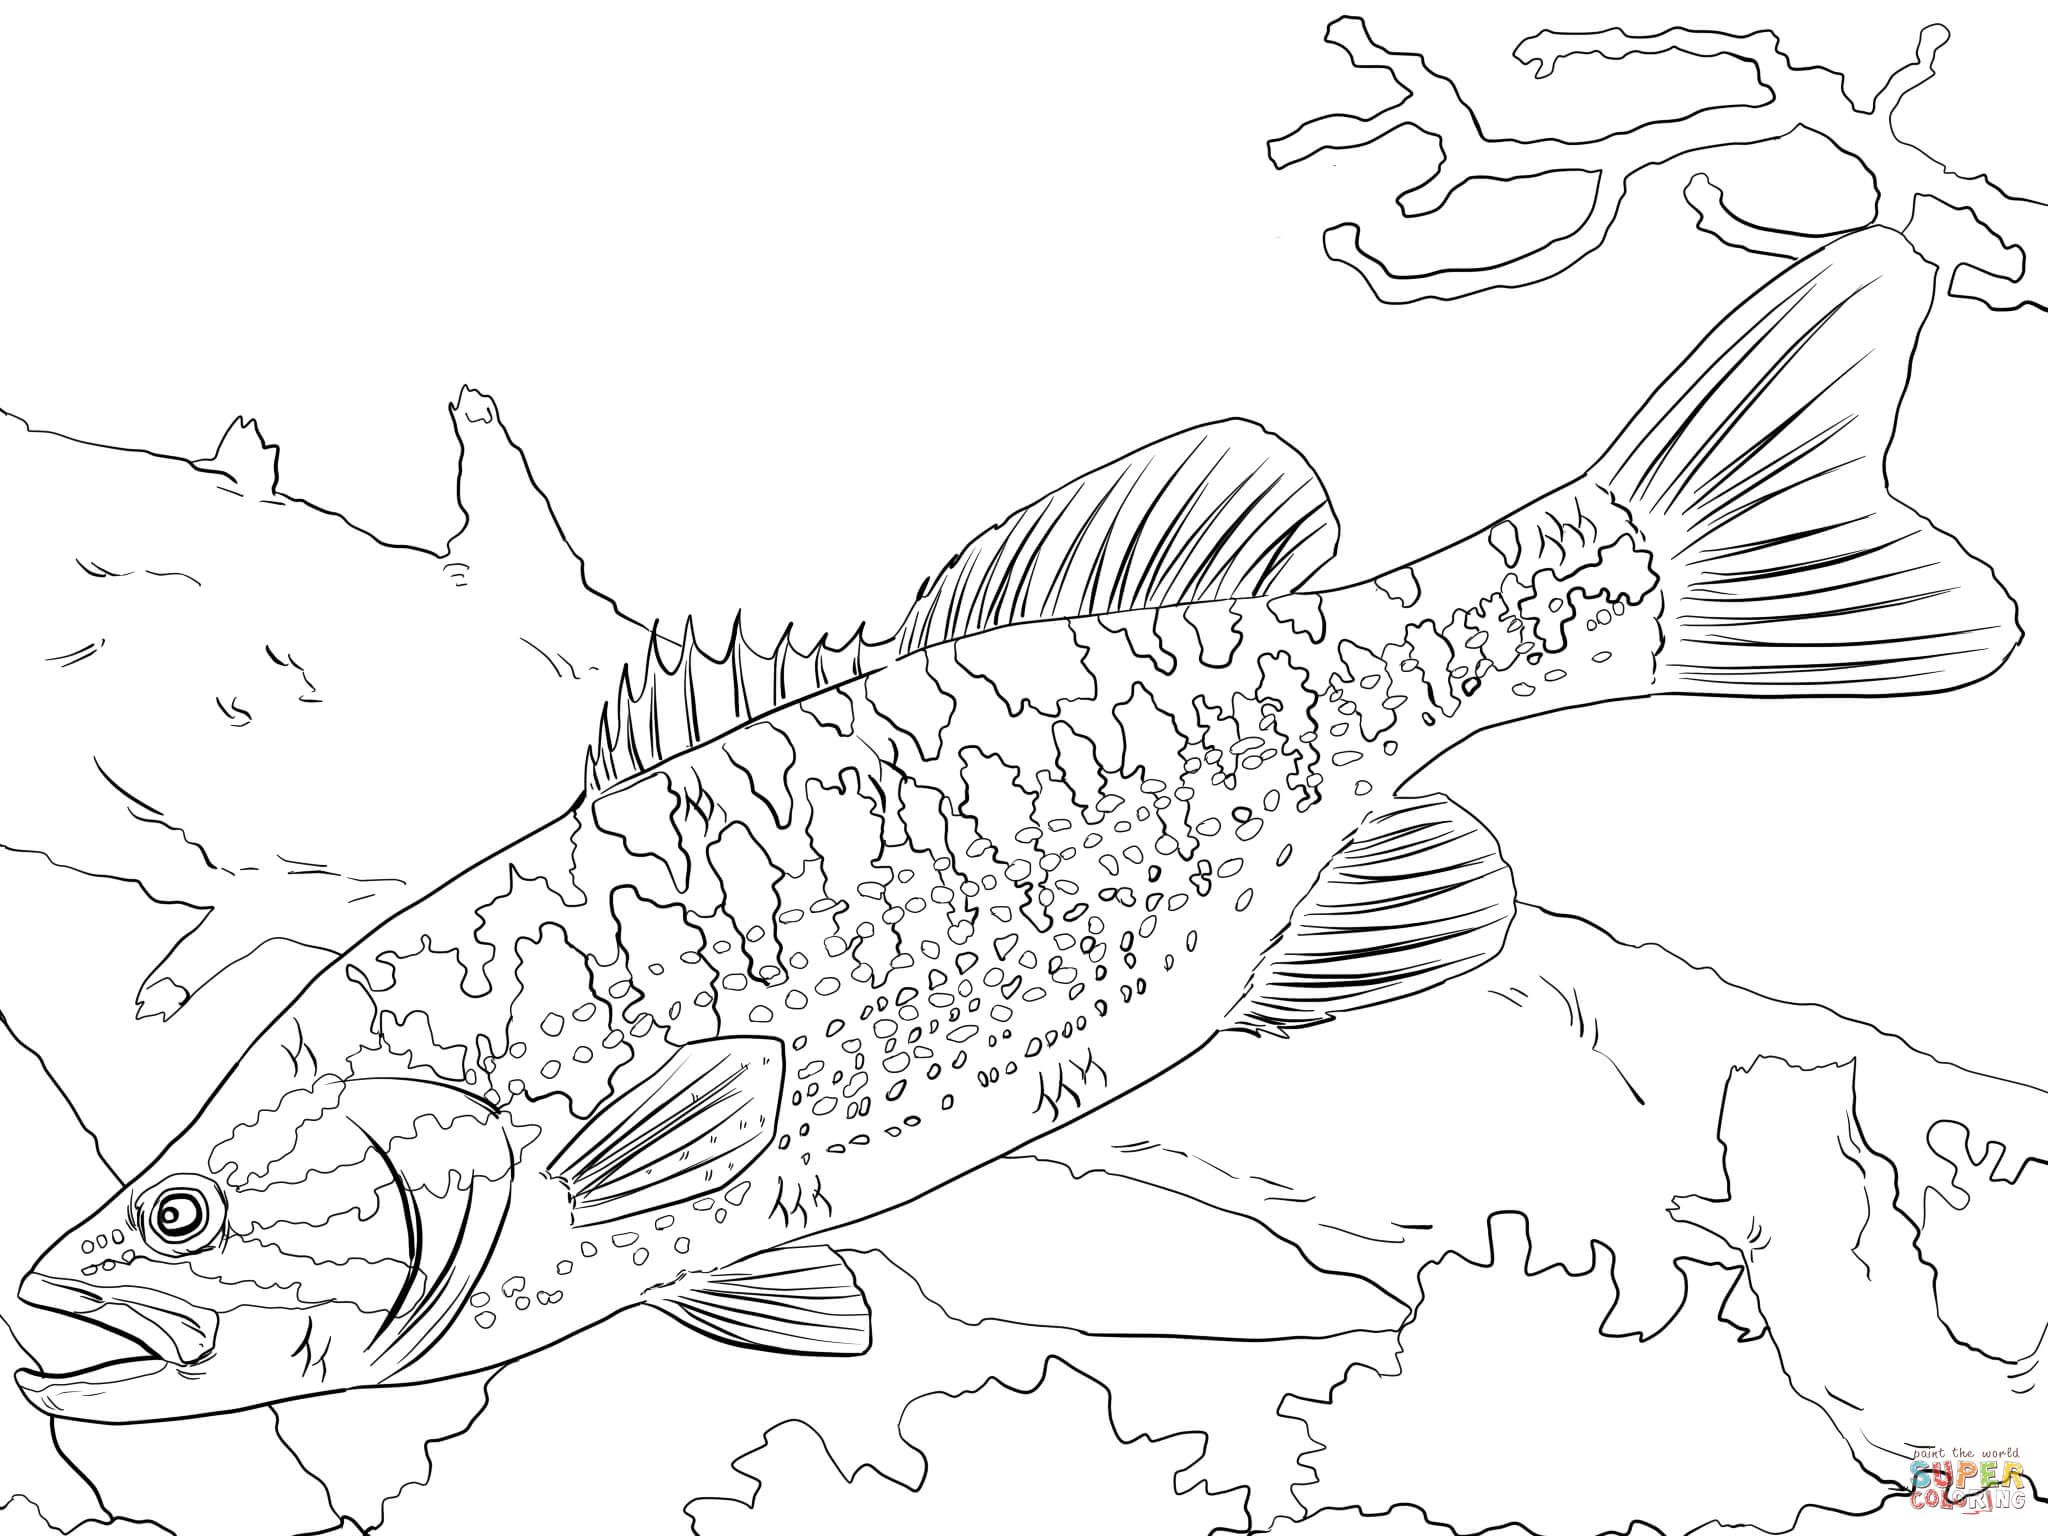 Guadalupe Bass Coloring Page Jpg Izobrazhenie Jpeg 2048 1536 Pikselov Fish Coloring Page Easy Coloring Pages Shark Coloring Pages